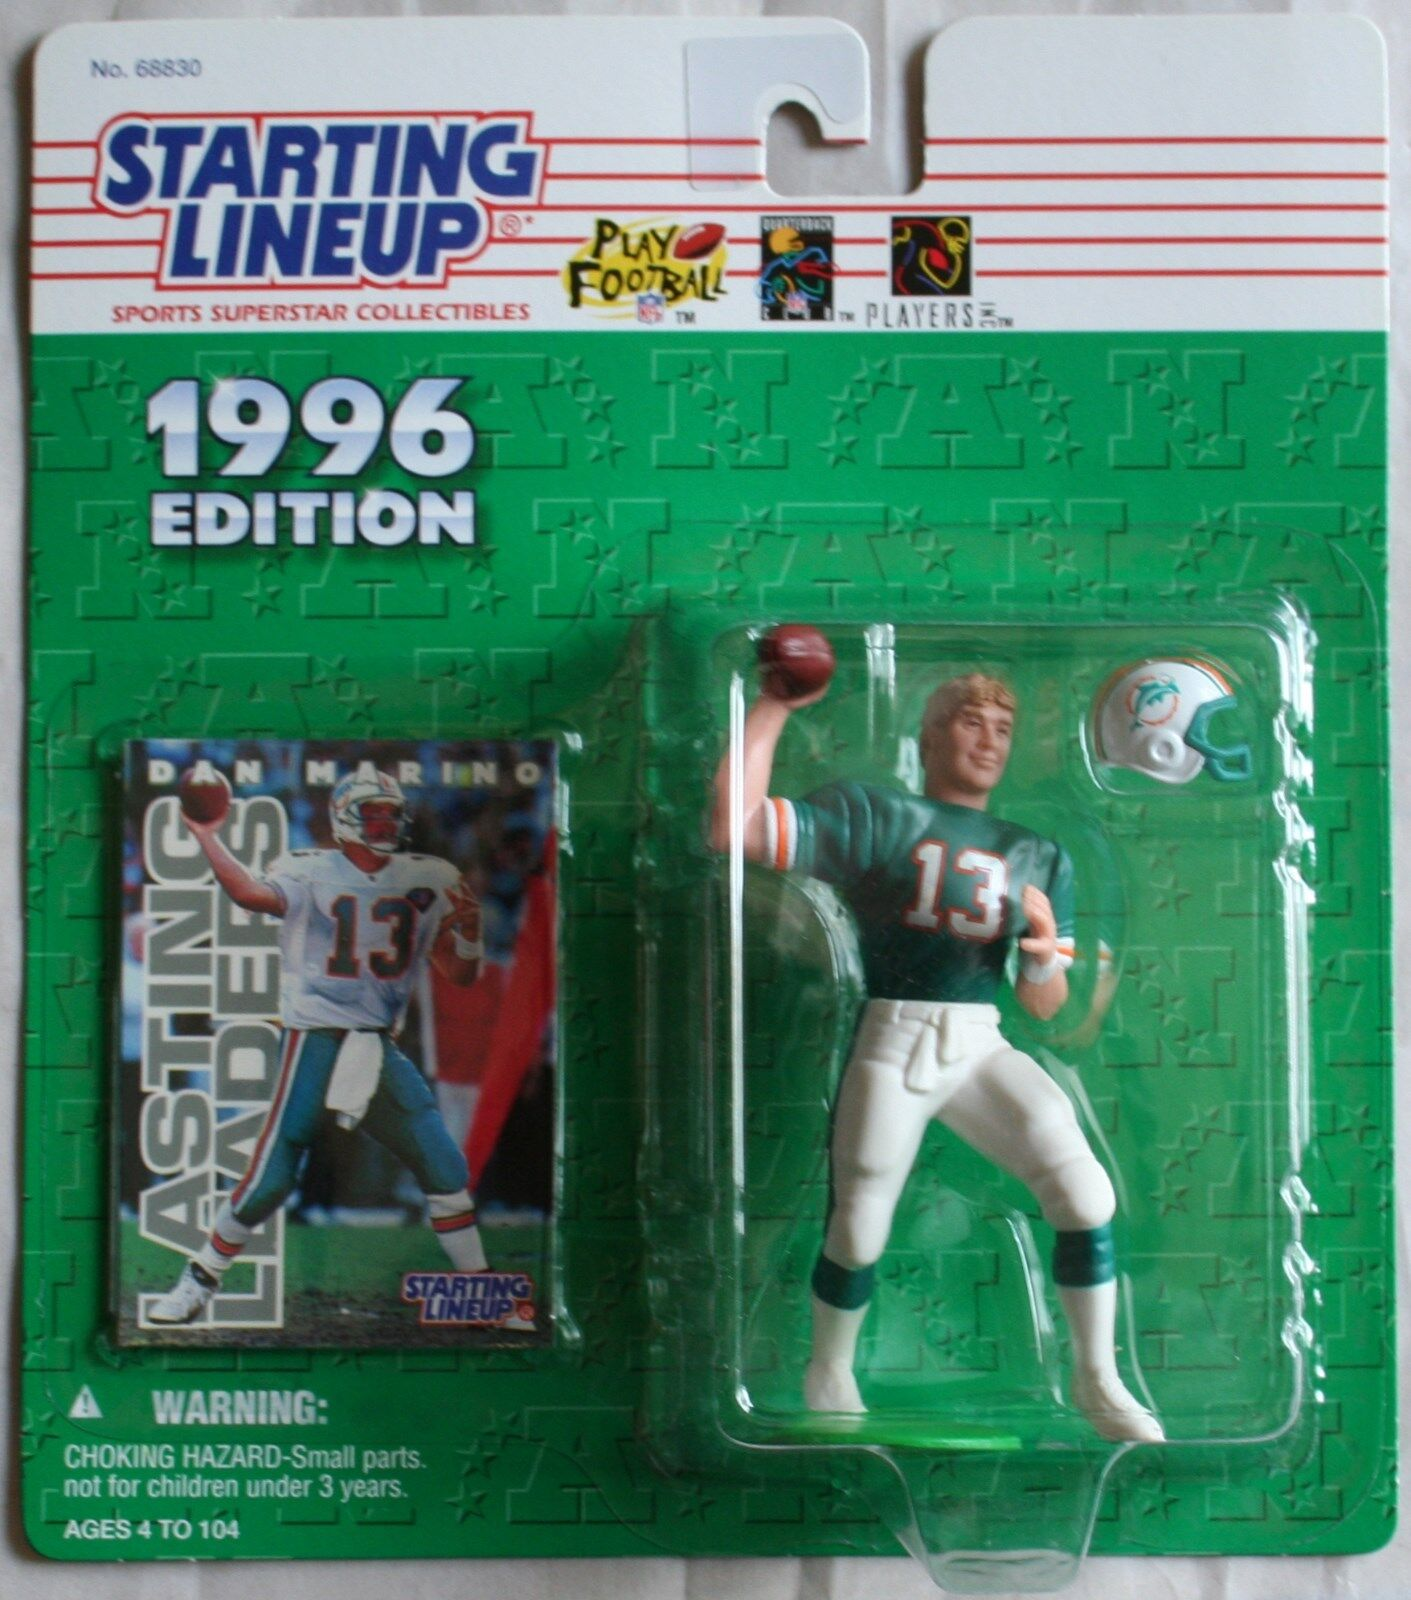 1996 Edition Starting Lineup (8) Different Football Action Figures & (1)Baseball